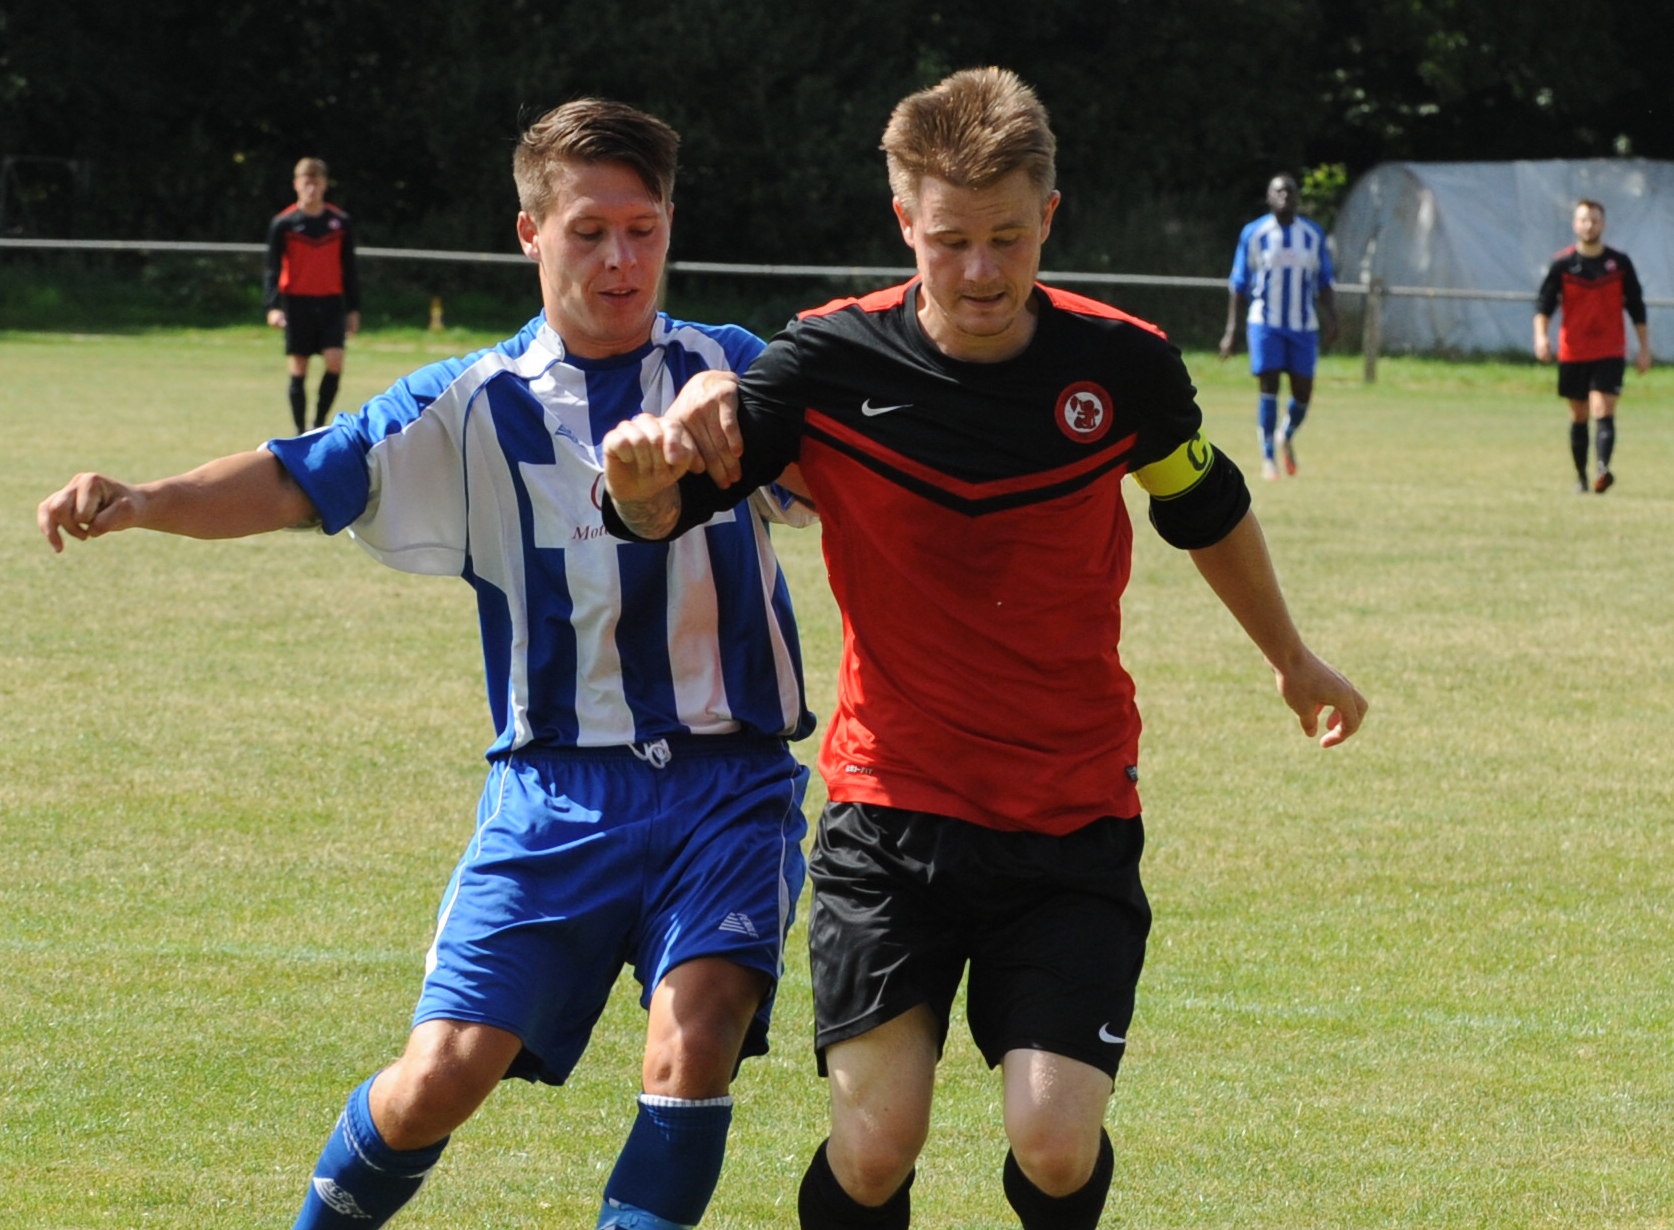 Sandhurst Town FC vs Wokingham & Emmbrook FC and what to expect in Division 1 East